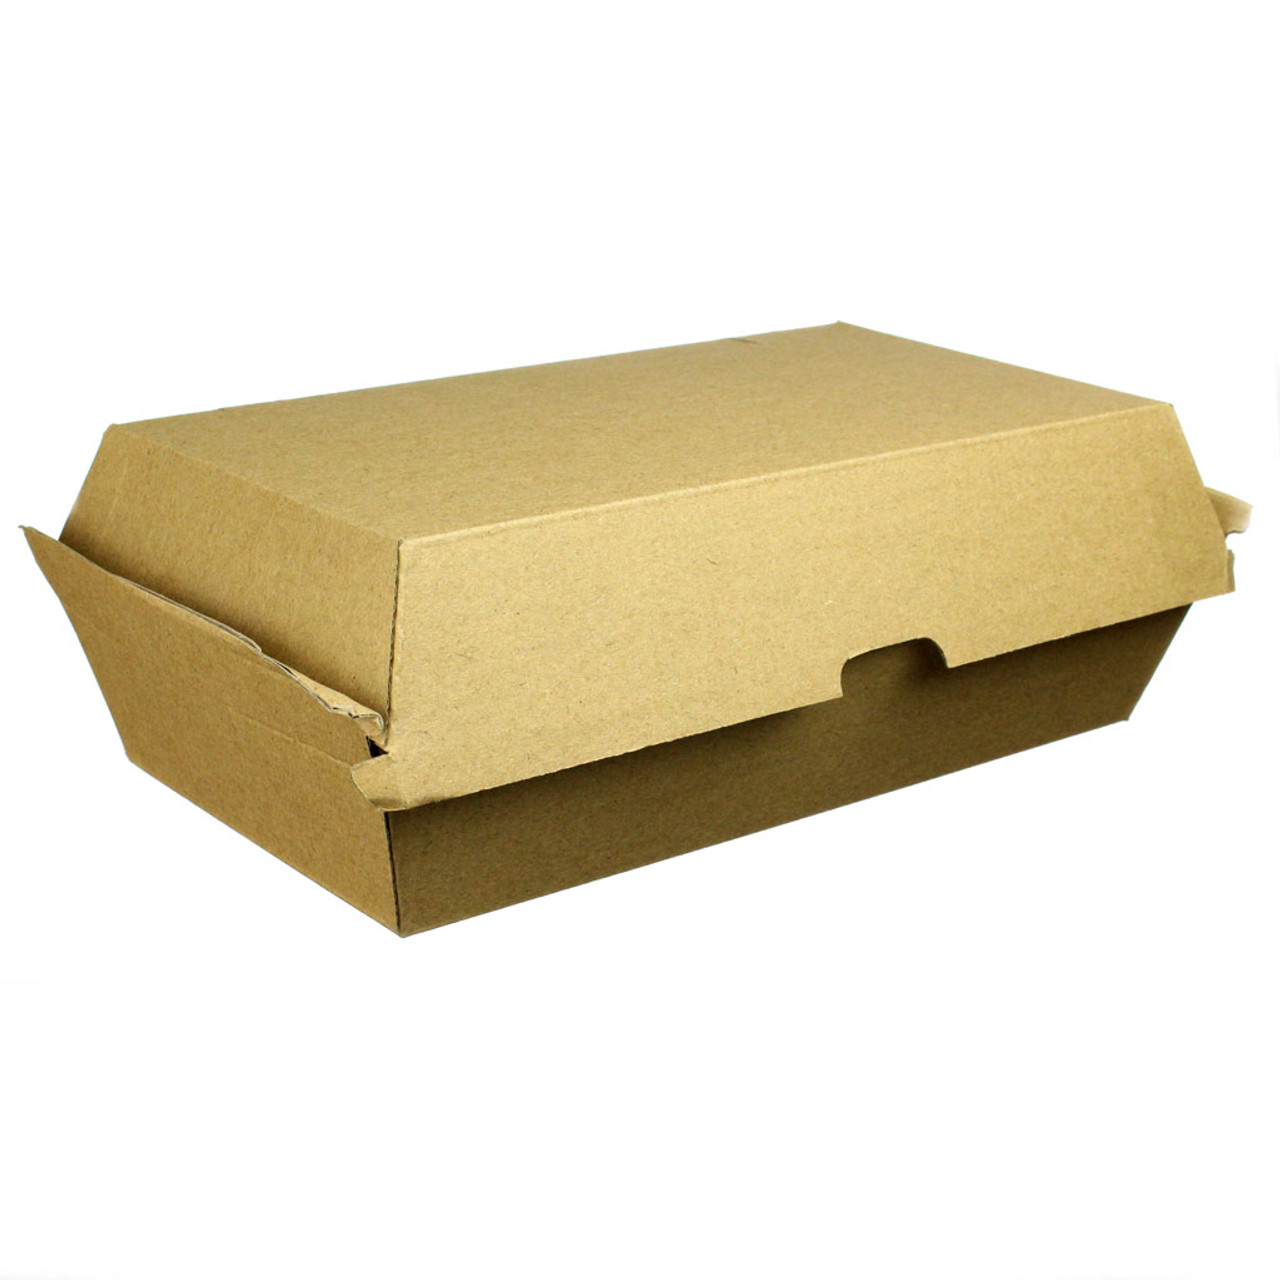 "Kraft Corrugated Clamshell - 8"" x 4.25"" - Case of 200"